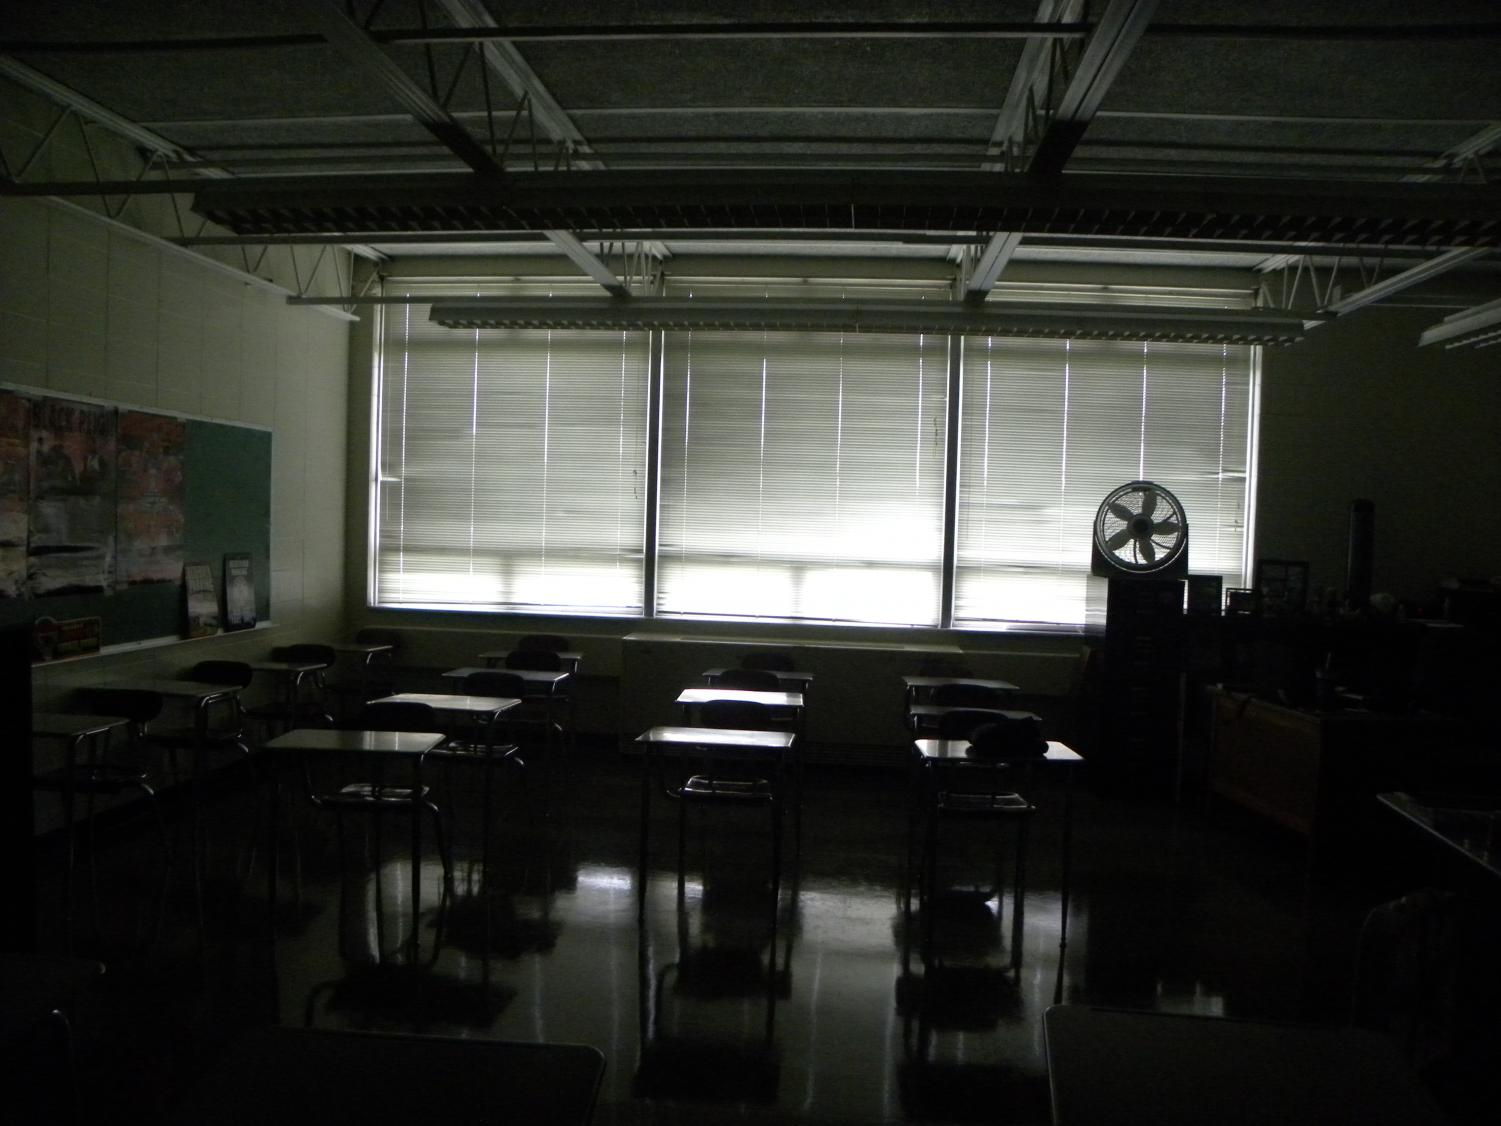 Curtains are drawn and the lights are out as students participate in an active shooter drill.